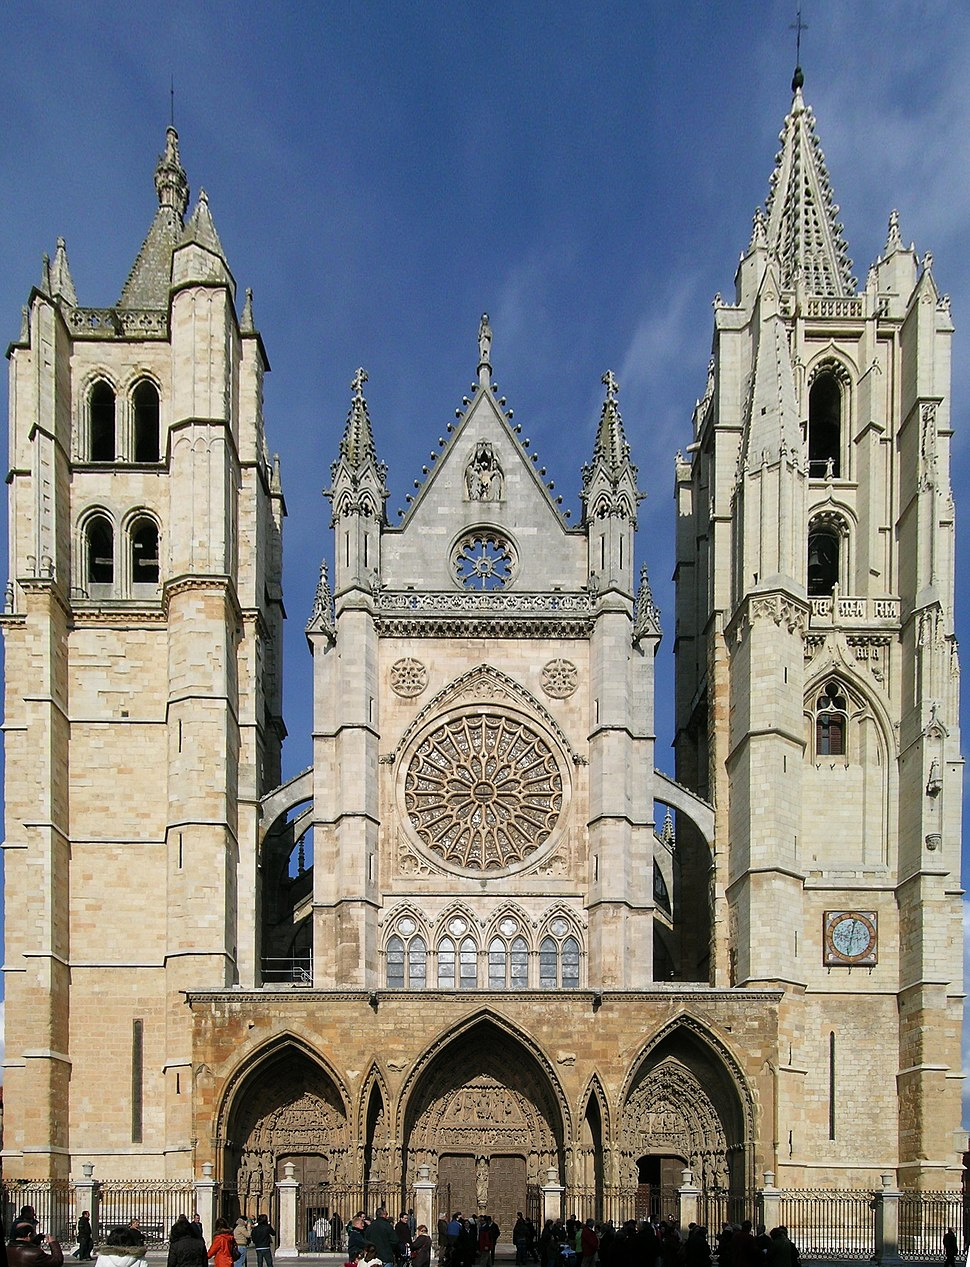 Leon cathedral facade inverted perspective